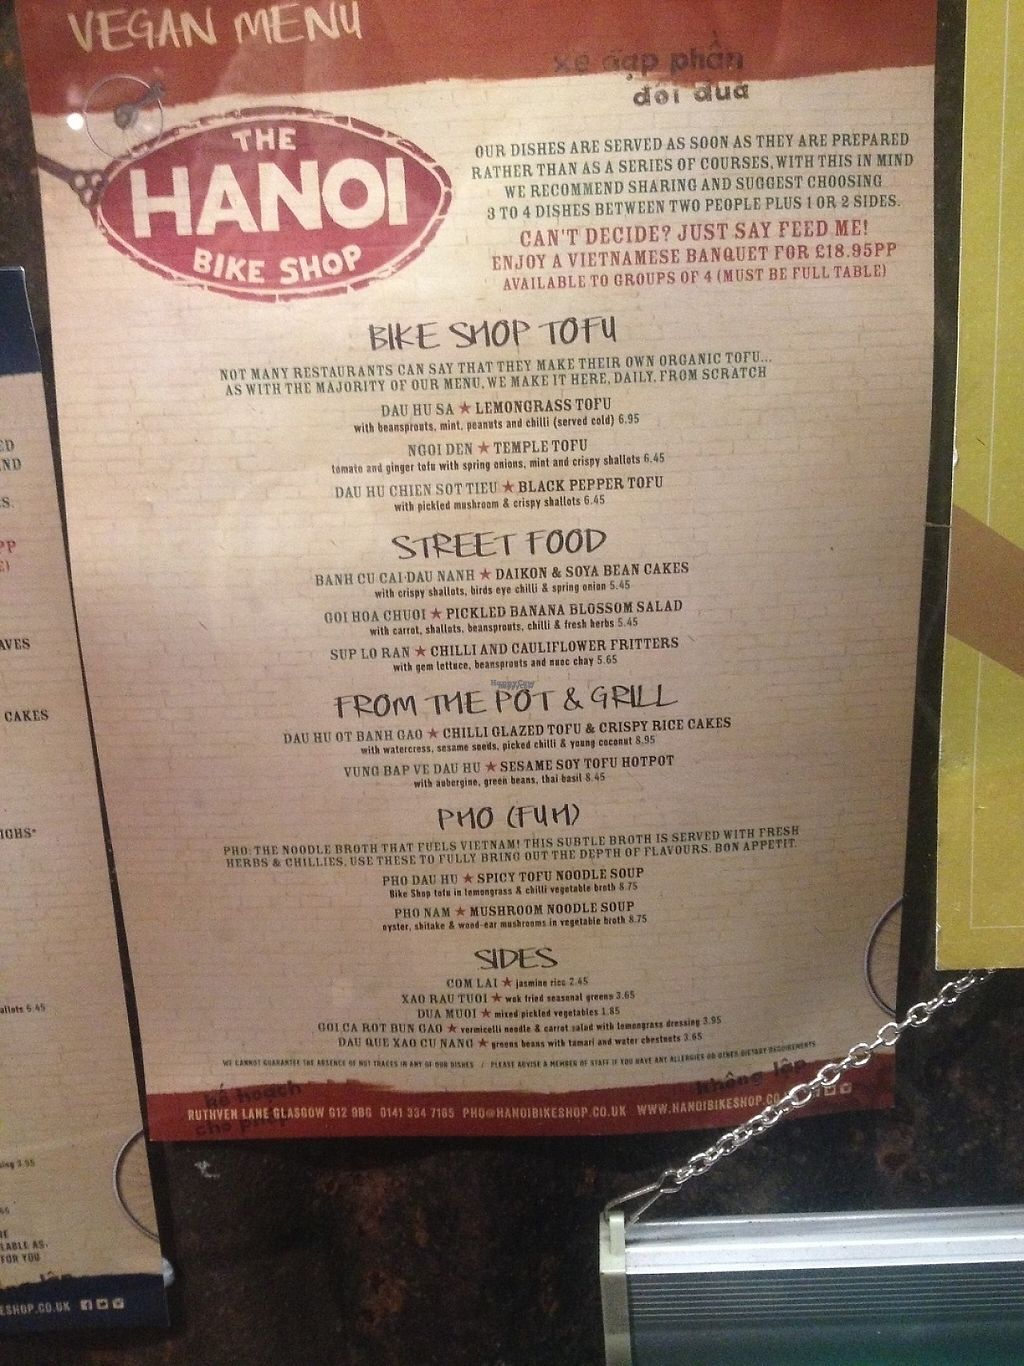 "Photo of Hanoi Bike Shop  by <a href=""/members/profile/esther802535"">esther802535</a> <br/>Full vegan menu as of Dec. 2016. Recommend zooming in <br/> December 27, 2016  - <a href='/contact/abuse/image/82176/205410'>Report</a>"